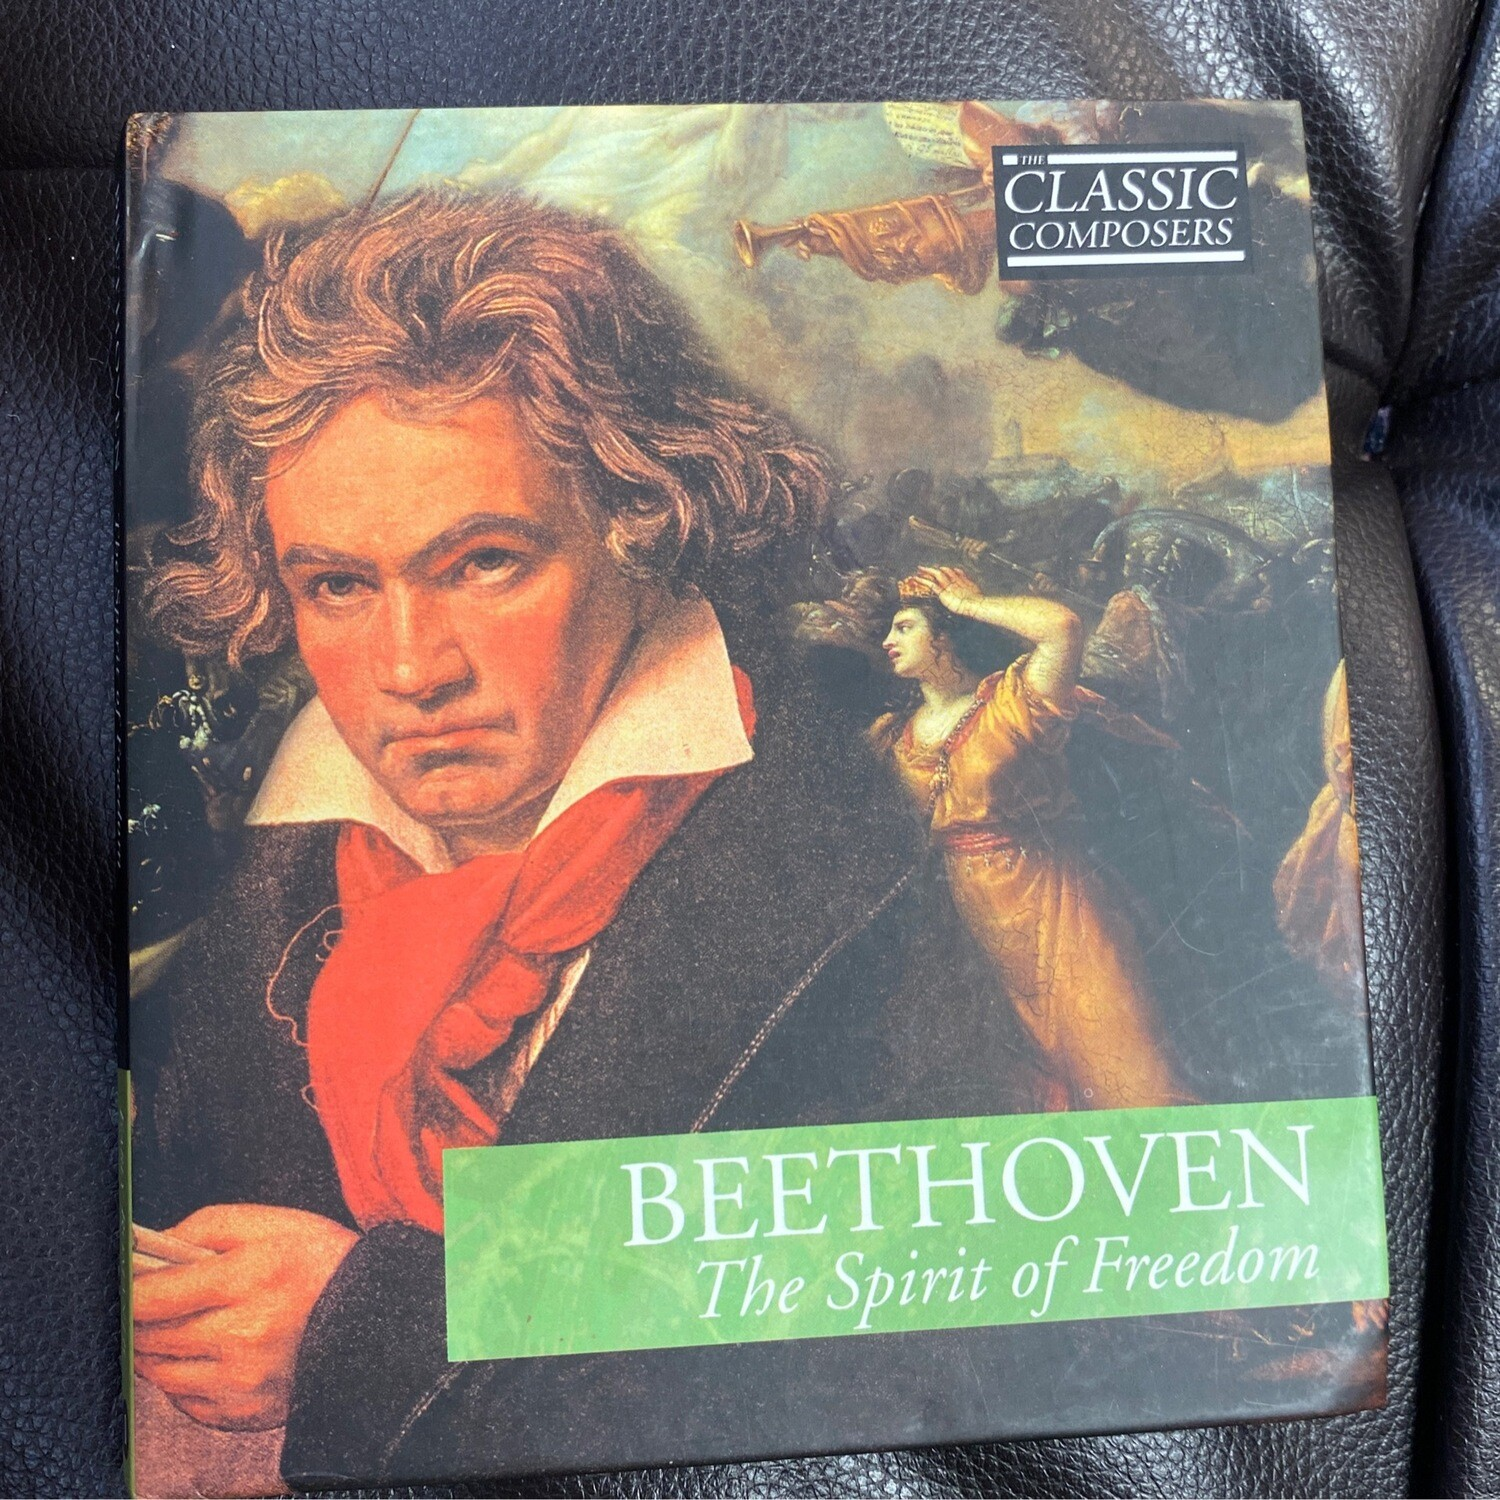 Beethoven The Spirit of Freedom CD